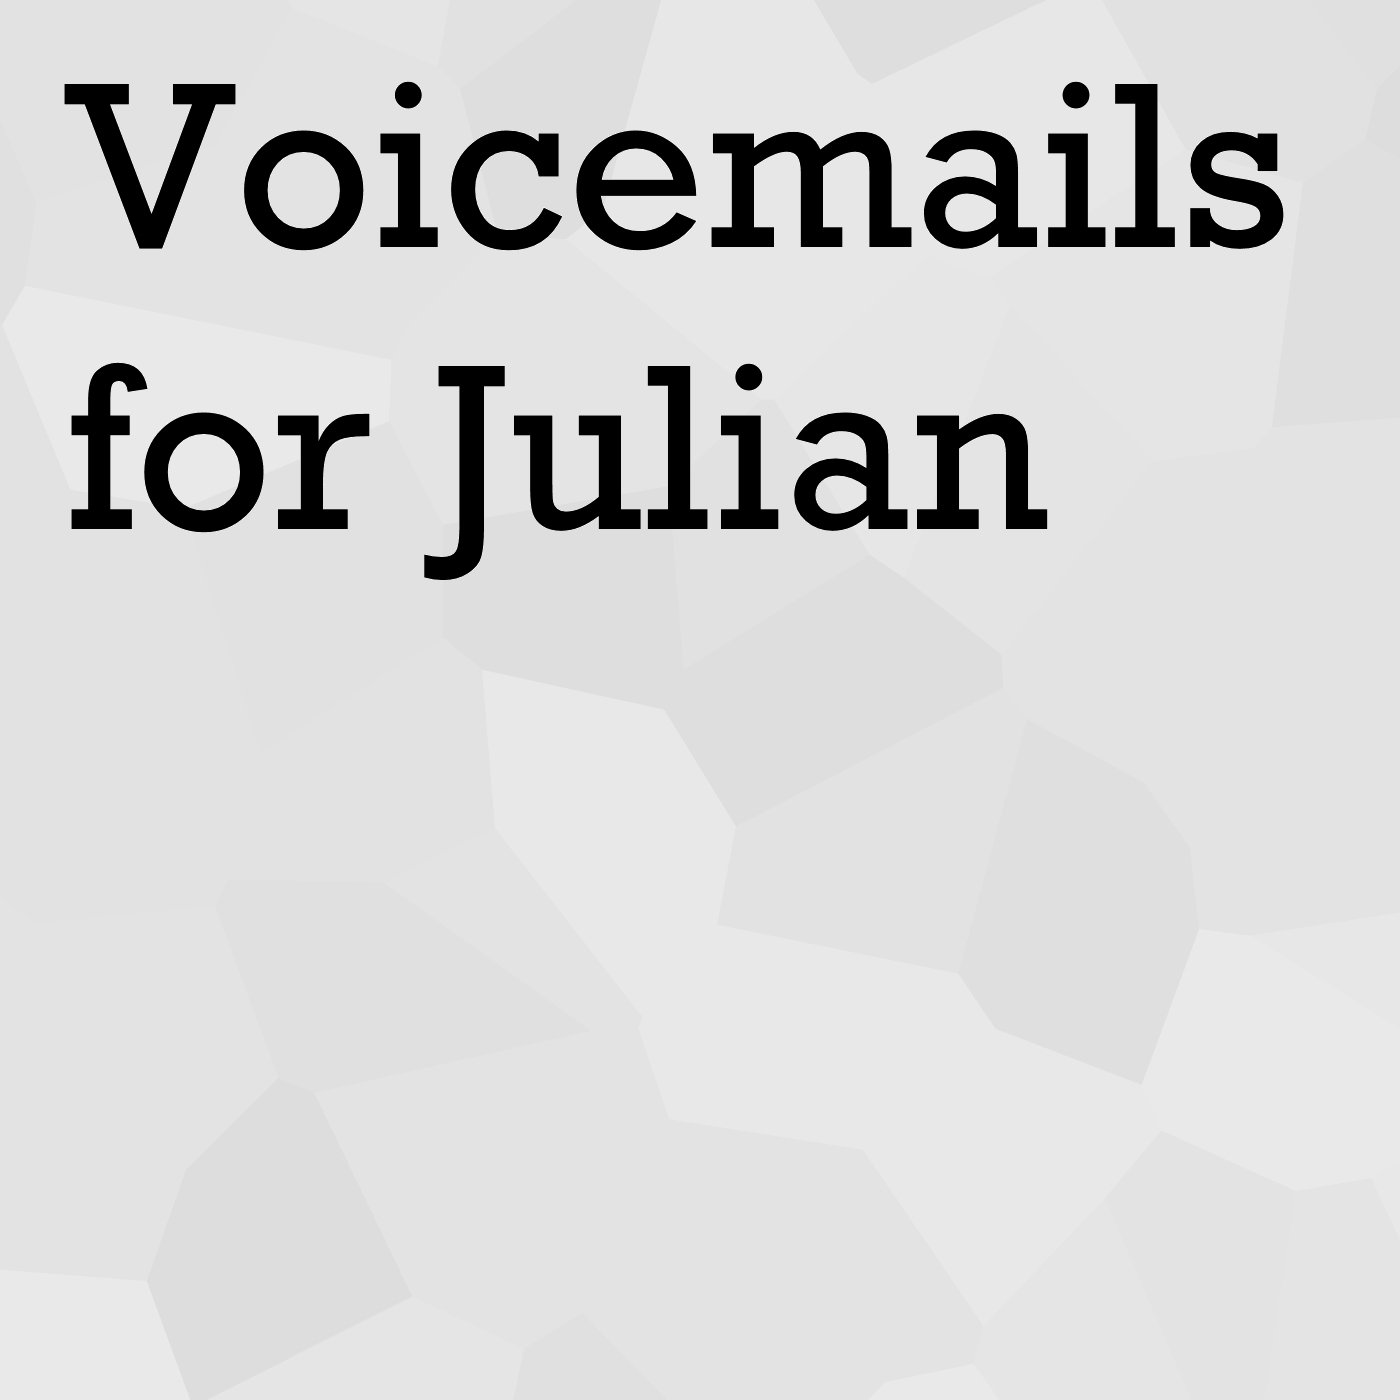 Voicemails for Julian